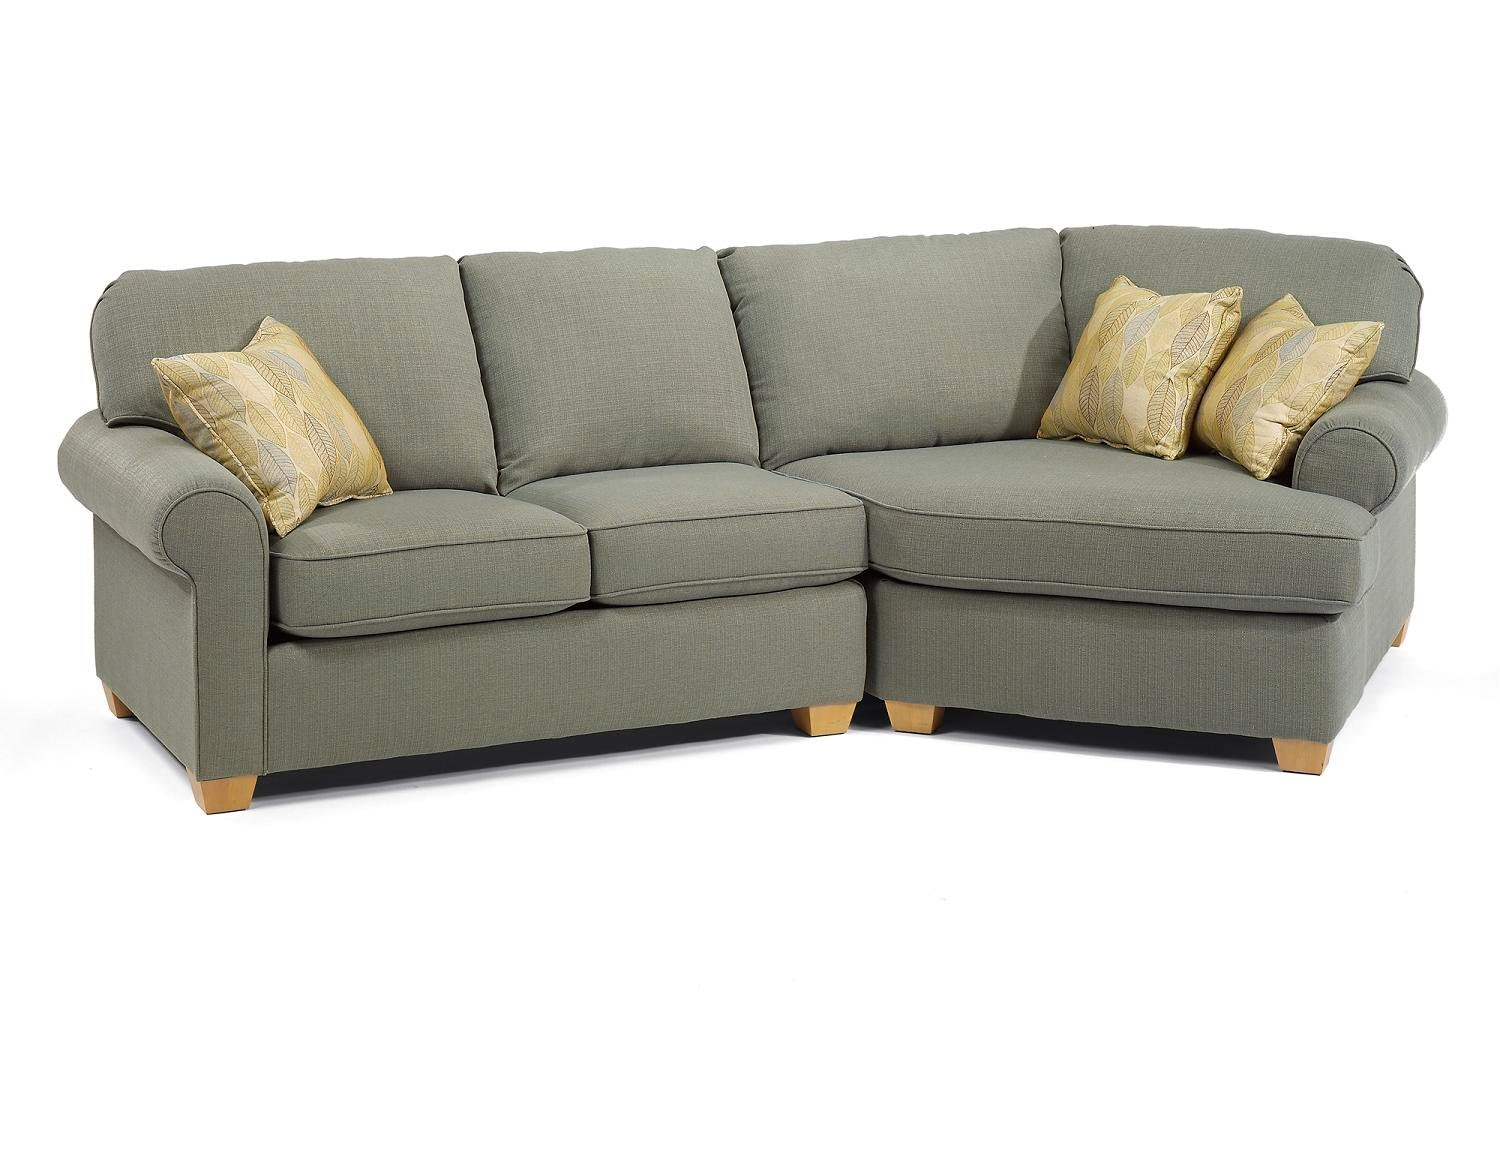 Featured Image of Angled Sofa Sectional